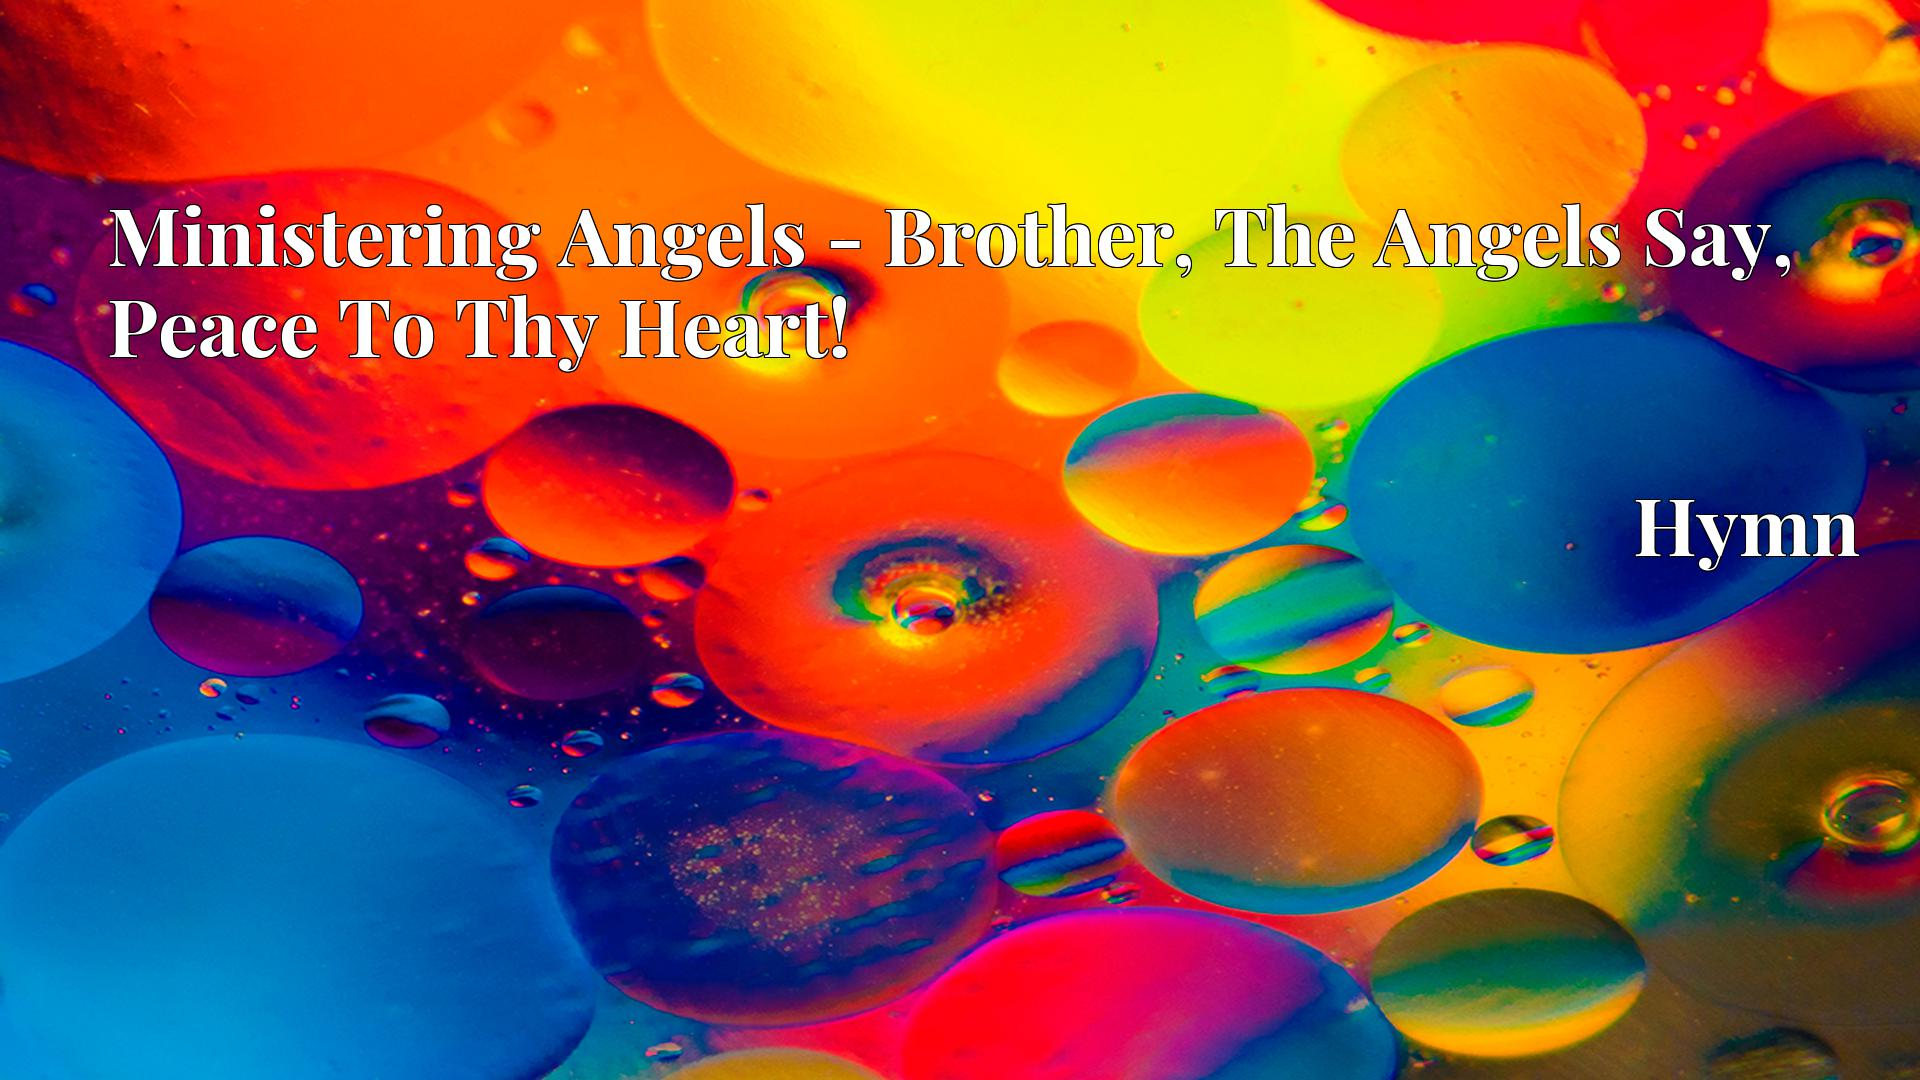 Ministering Angels - Brother, The Angels Say, Peace To Thy Heart! - Hymn